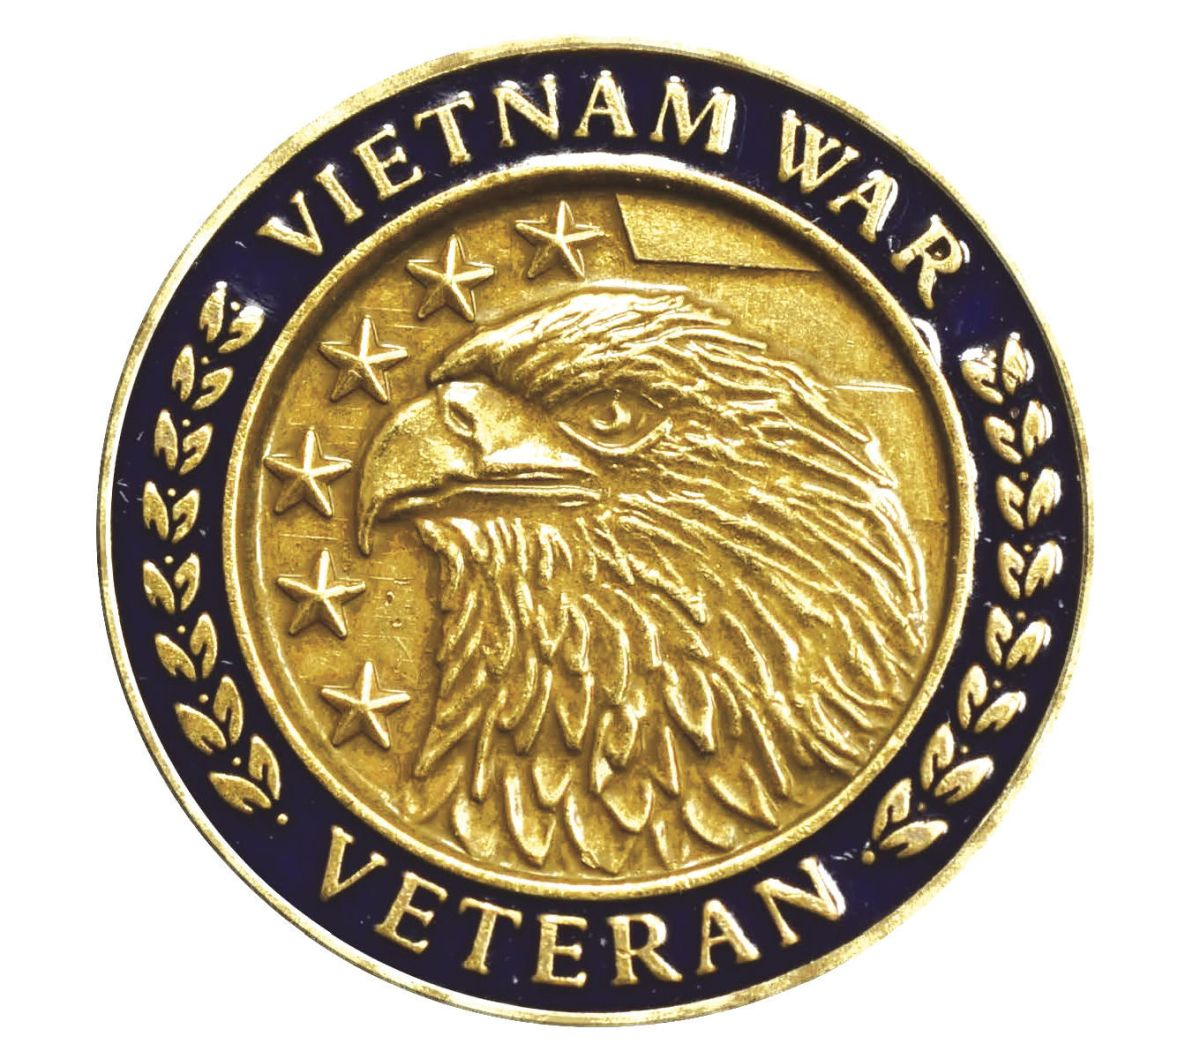 U.S. issues pin to honor Vietnam veterans | State News ...